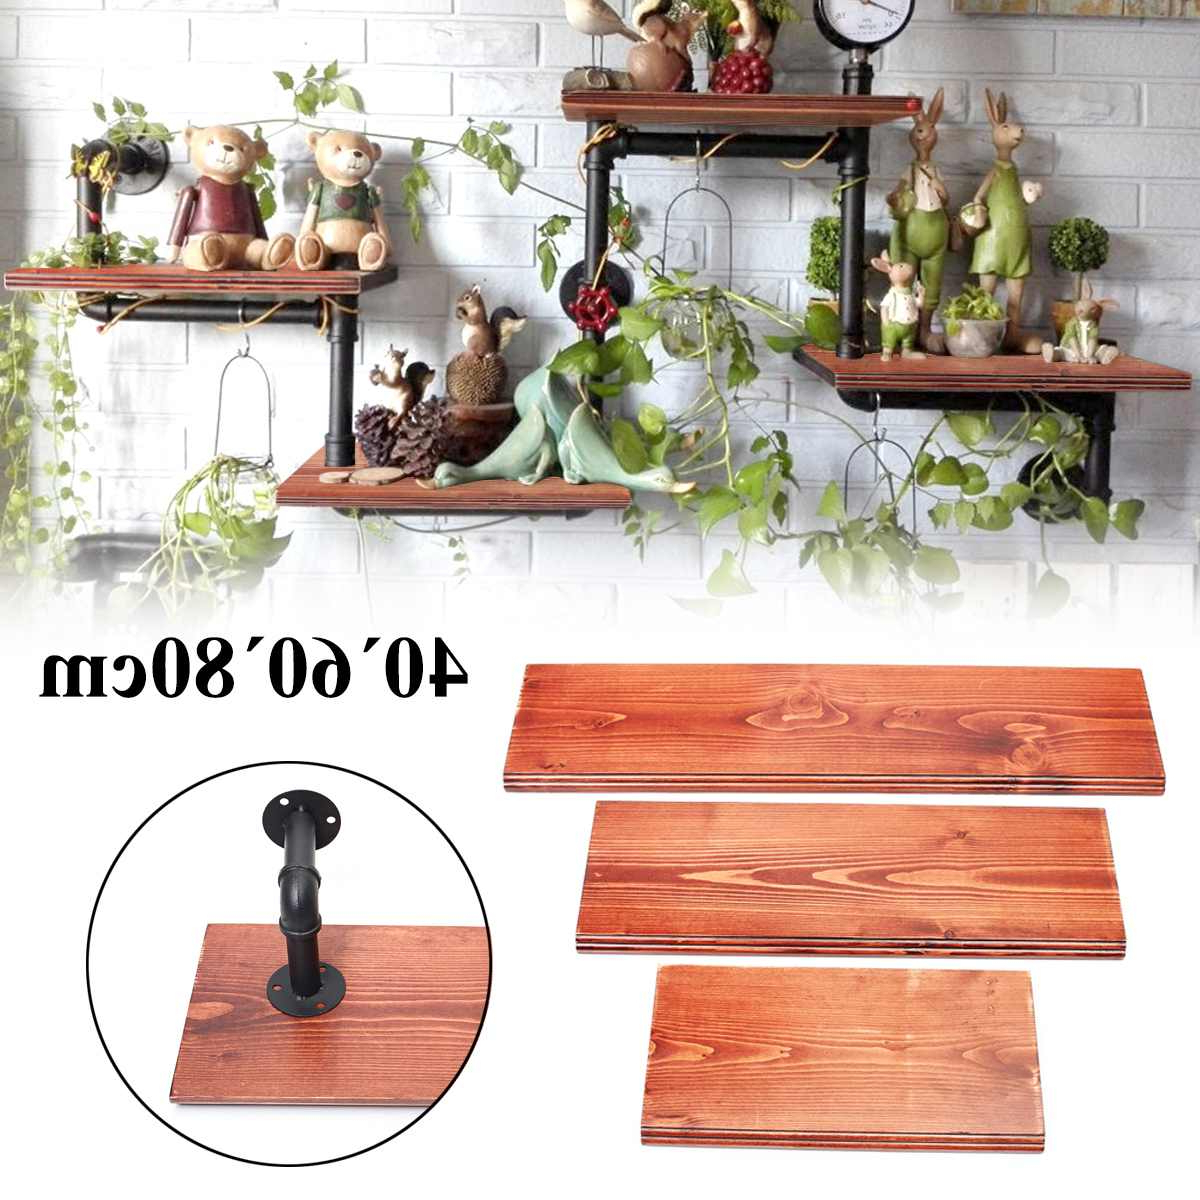 [%us $104.77 52% Off|3pcs Wall Shelves Vintage Solid Wood Board Panel Shelf Kit 40+60+80cm Bookshelf With 6 Iron Pipes Wall Mount For Home Decor In Intended For Most Popular Kit Bookcases|kit Bookcases Inside Newest Us $104.77 52% Off|3pcs Wall Shelves Vintage Solid Wood Board Panel Shelf Kit 40+60+80cm Bookshelf With 6 Iron Pipes Wall Mount For Home Decor In|well Known Kit Bookcases Pertaining To Us $104.77 52% Off|3pcs Wall Shelves Vintage Solid Wood Board Panel Shelf Kit 40+60+80cm Bookshelf With 6 Iron Pipes Wall Mount For Home Decor In|2019 Us $ (View 12 of 20)